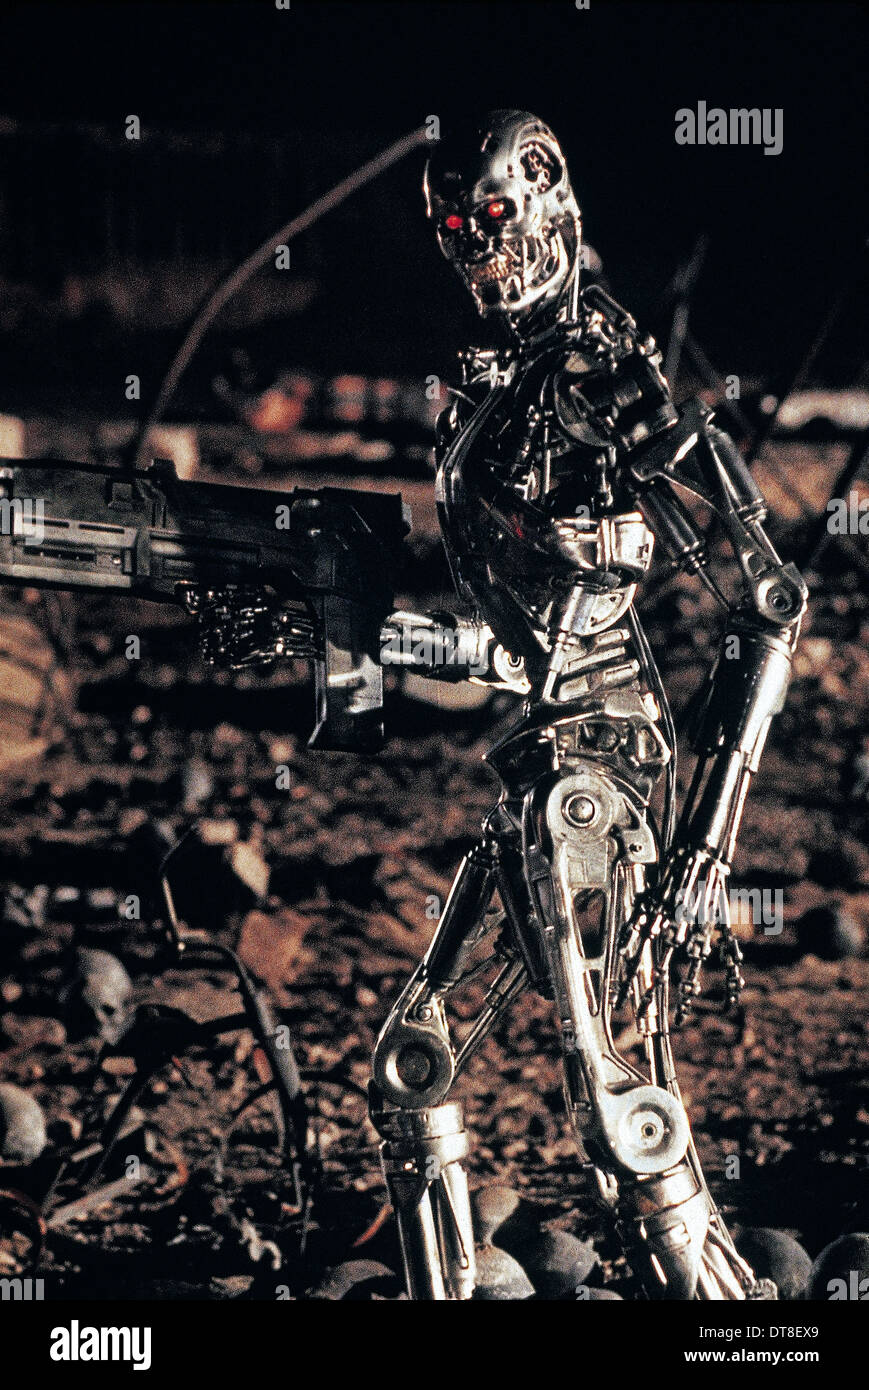 T-800 ROBOT TERMINATOR 2: JUDGMENT DAY (1991) - Stock Image